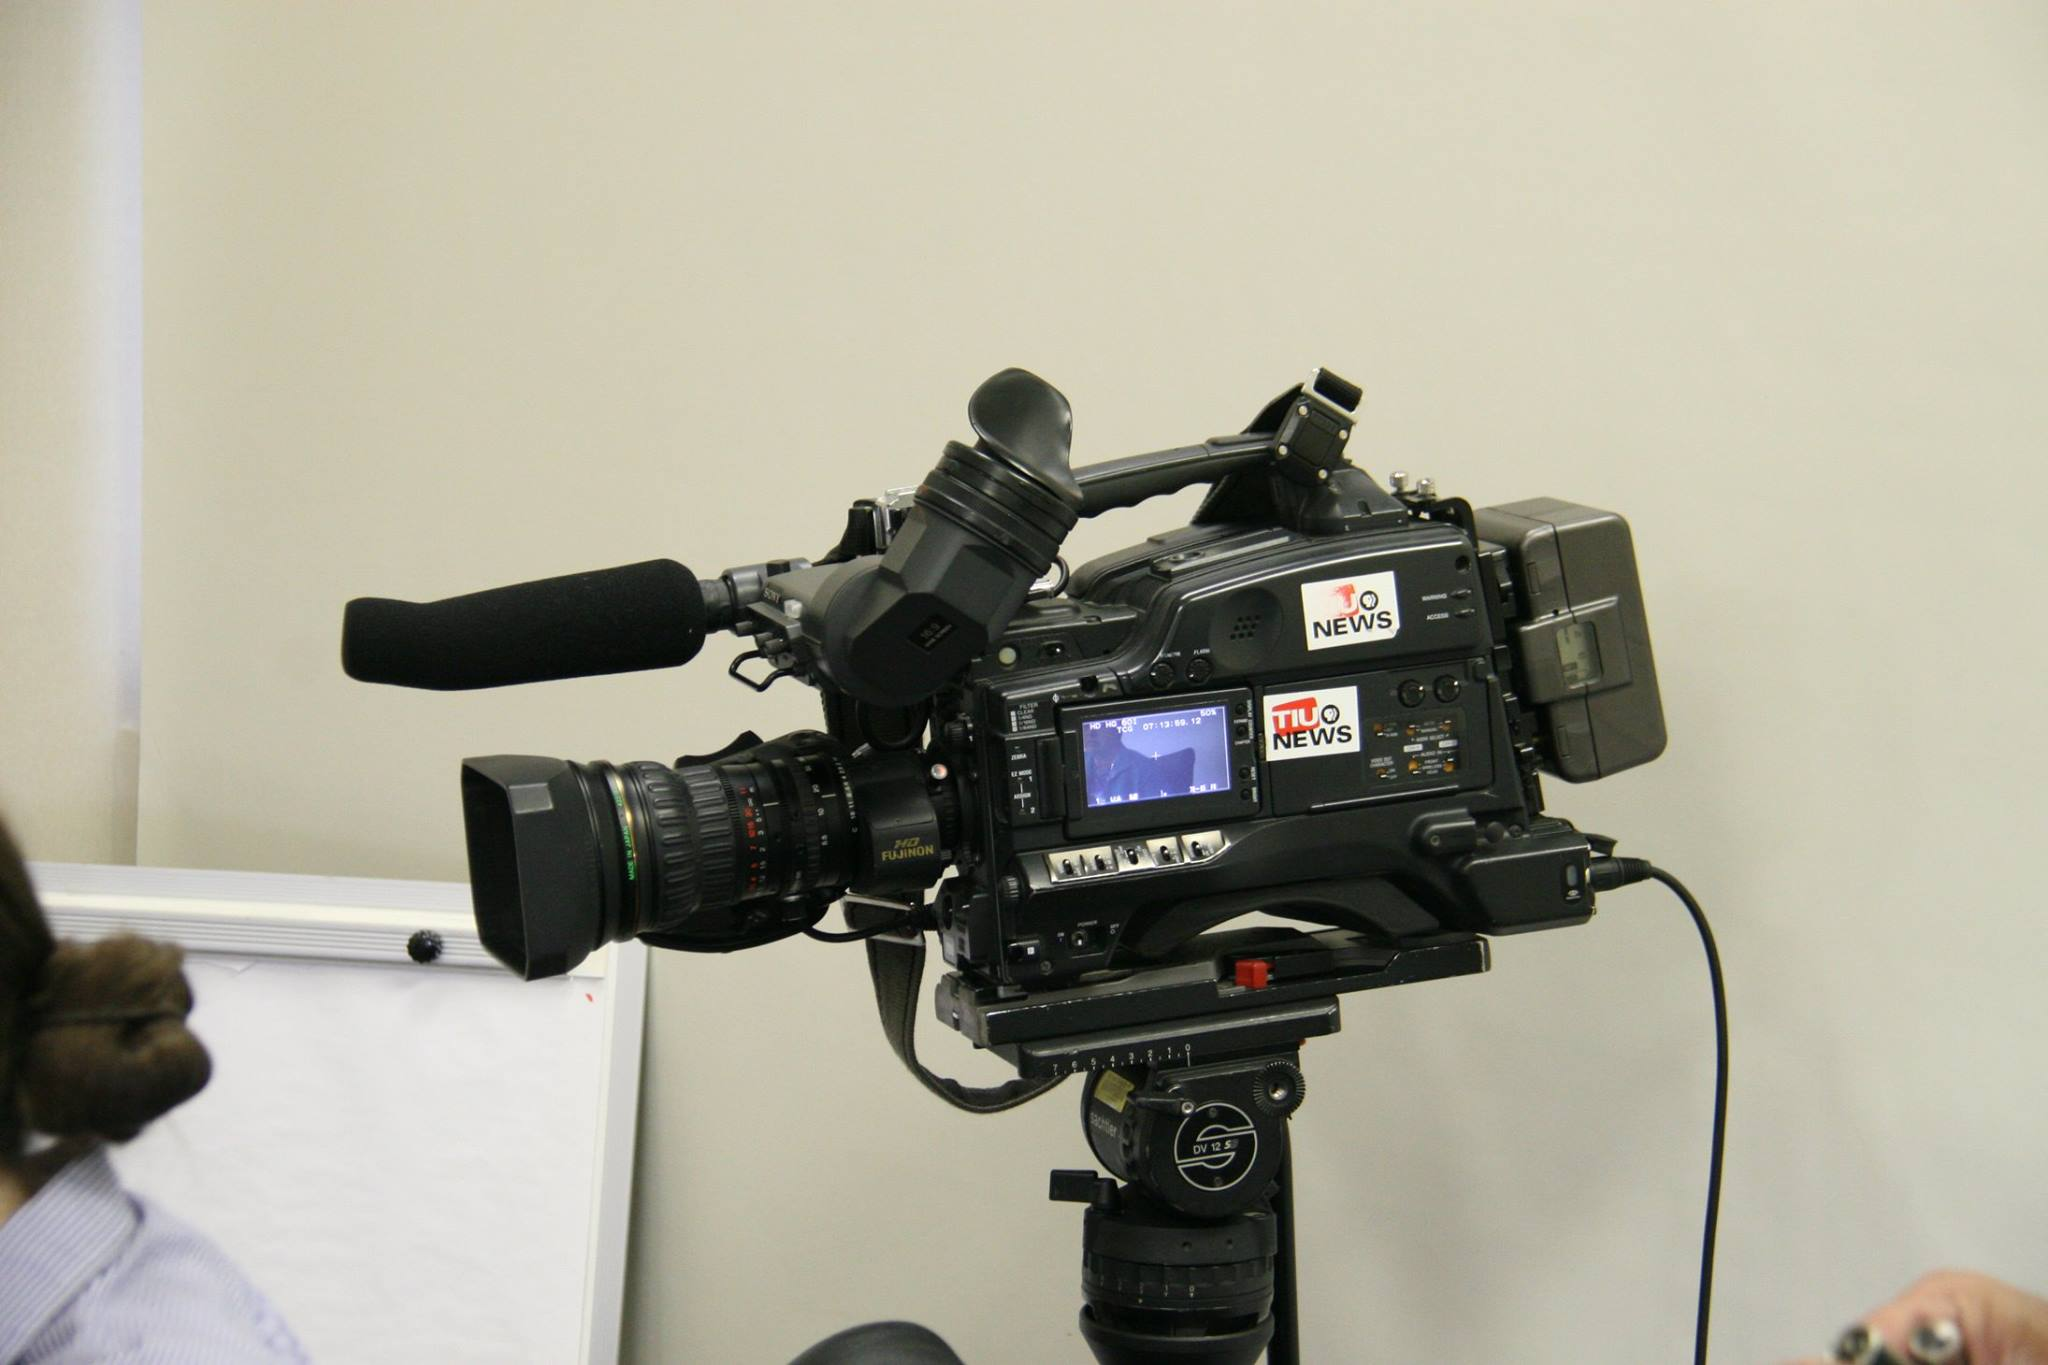 Video Camera filming the interview